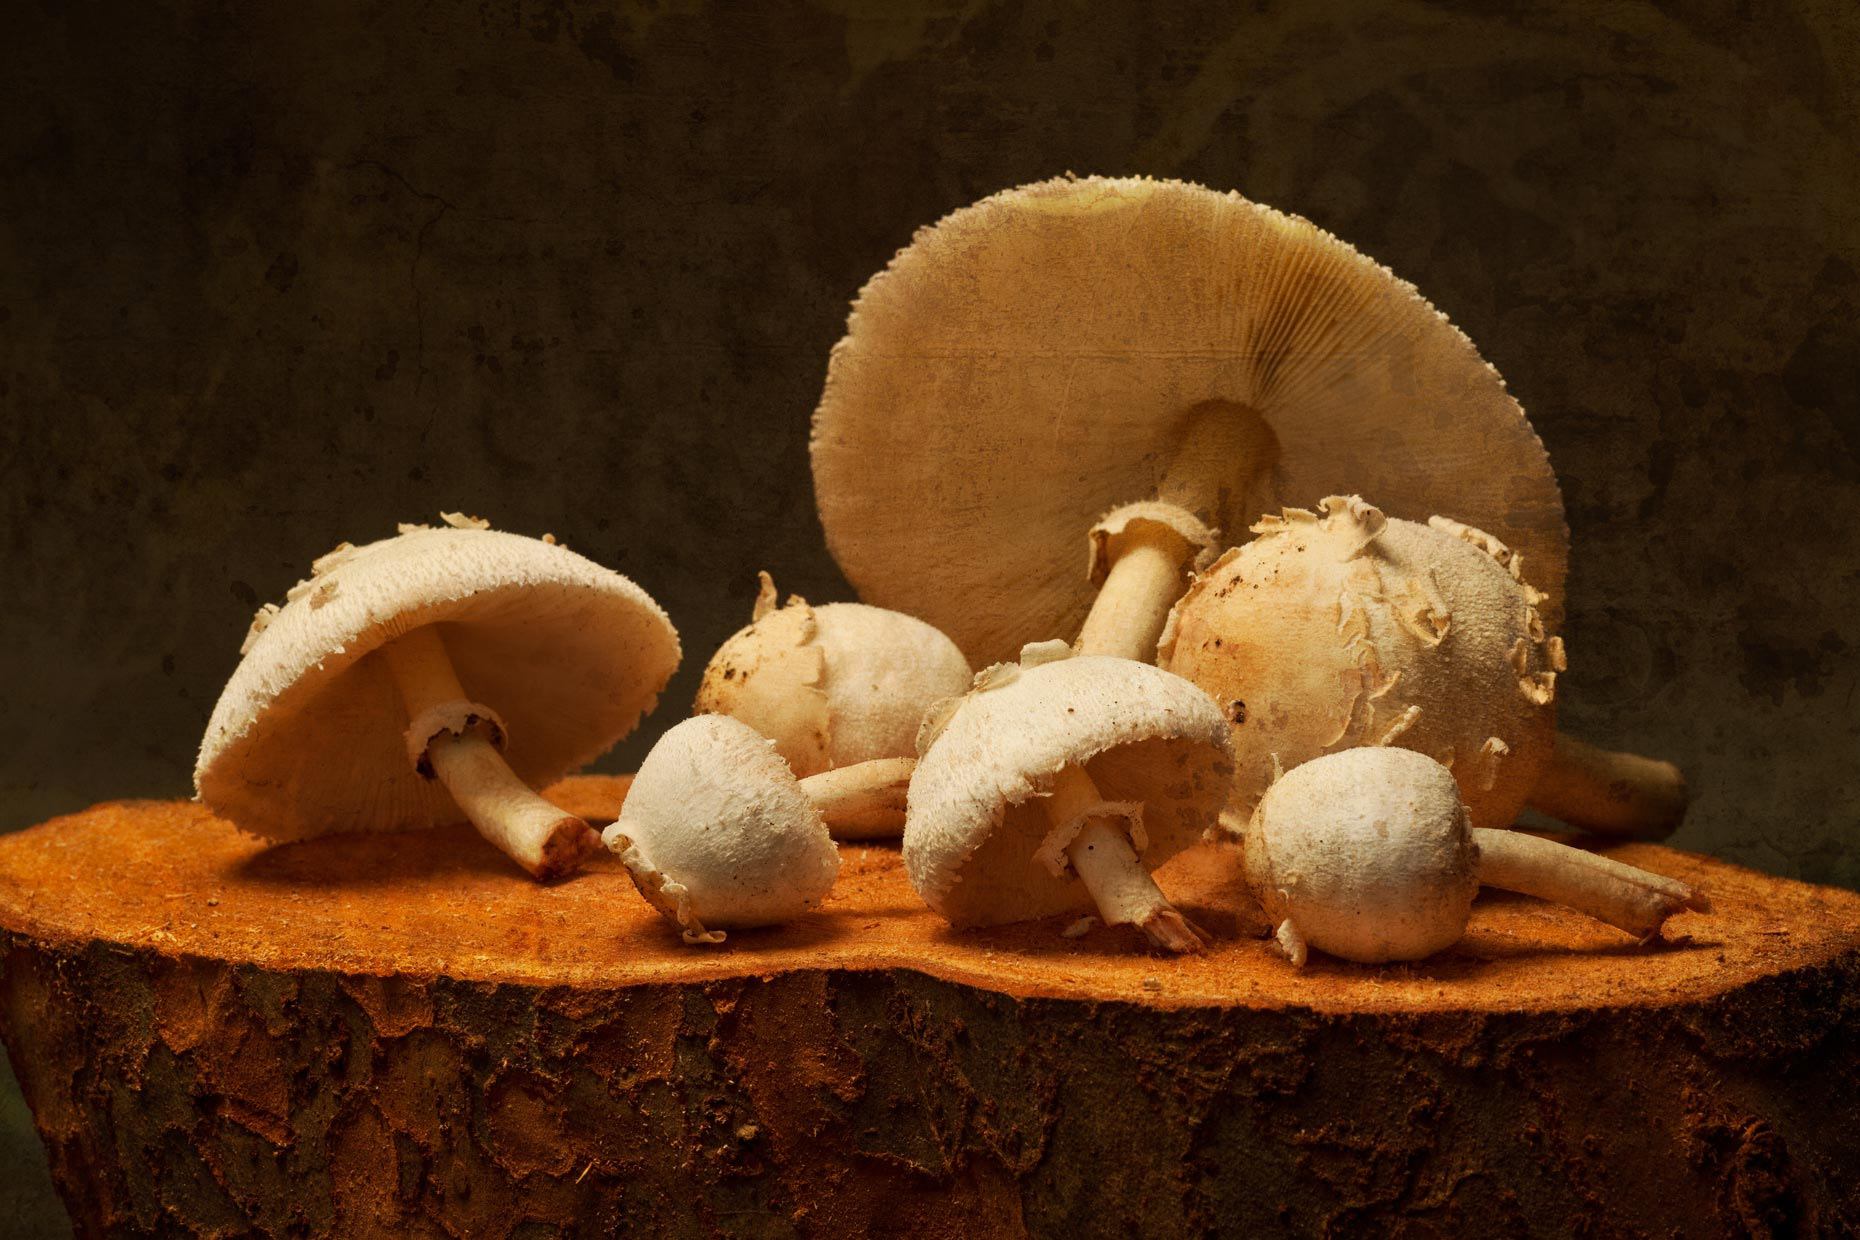 Orlando Professional Food Photography | Mushrooms